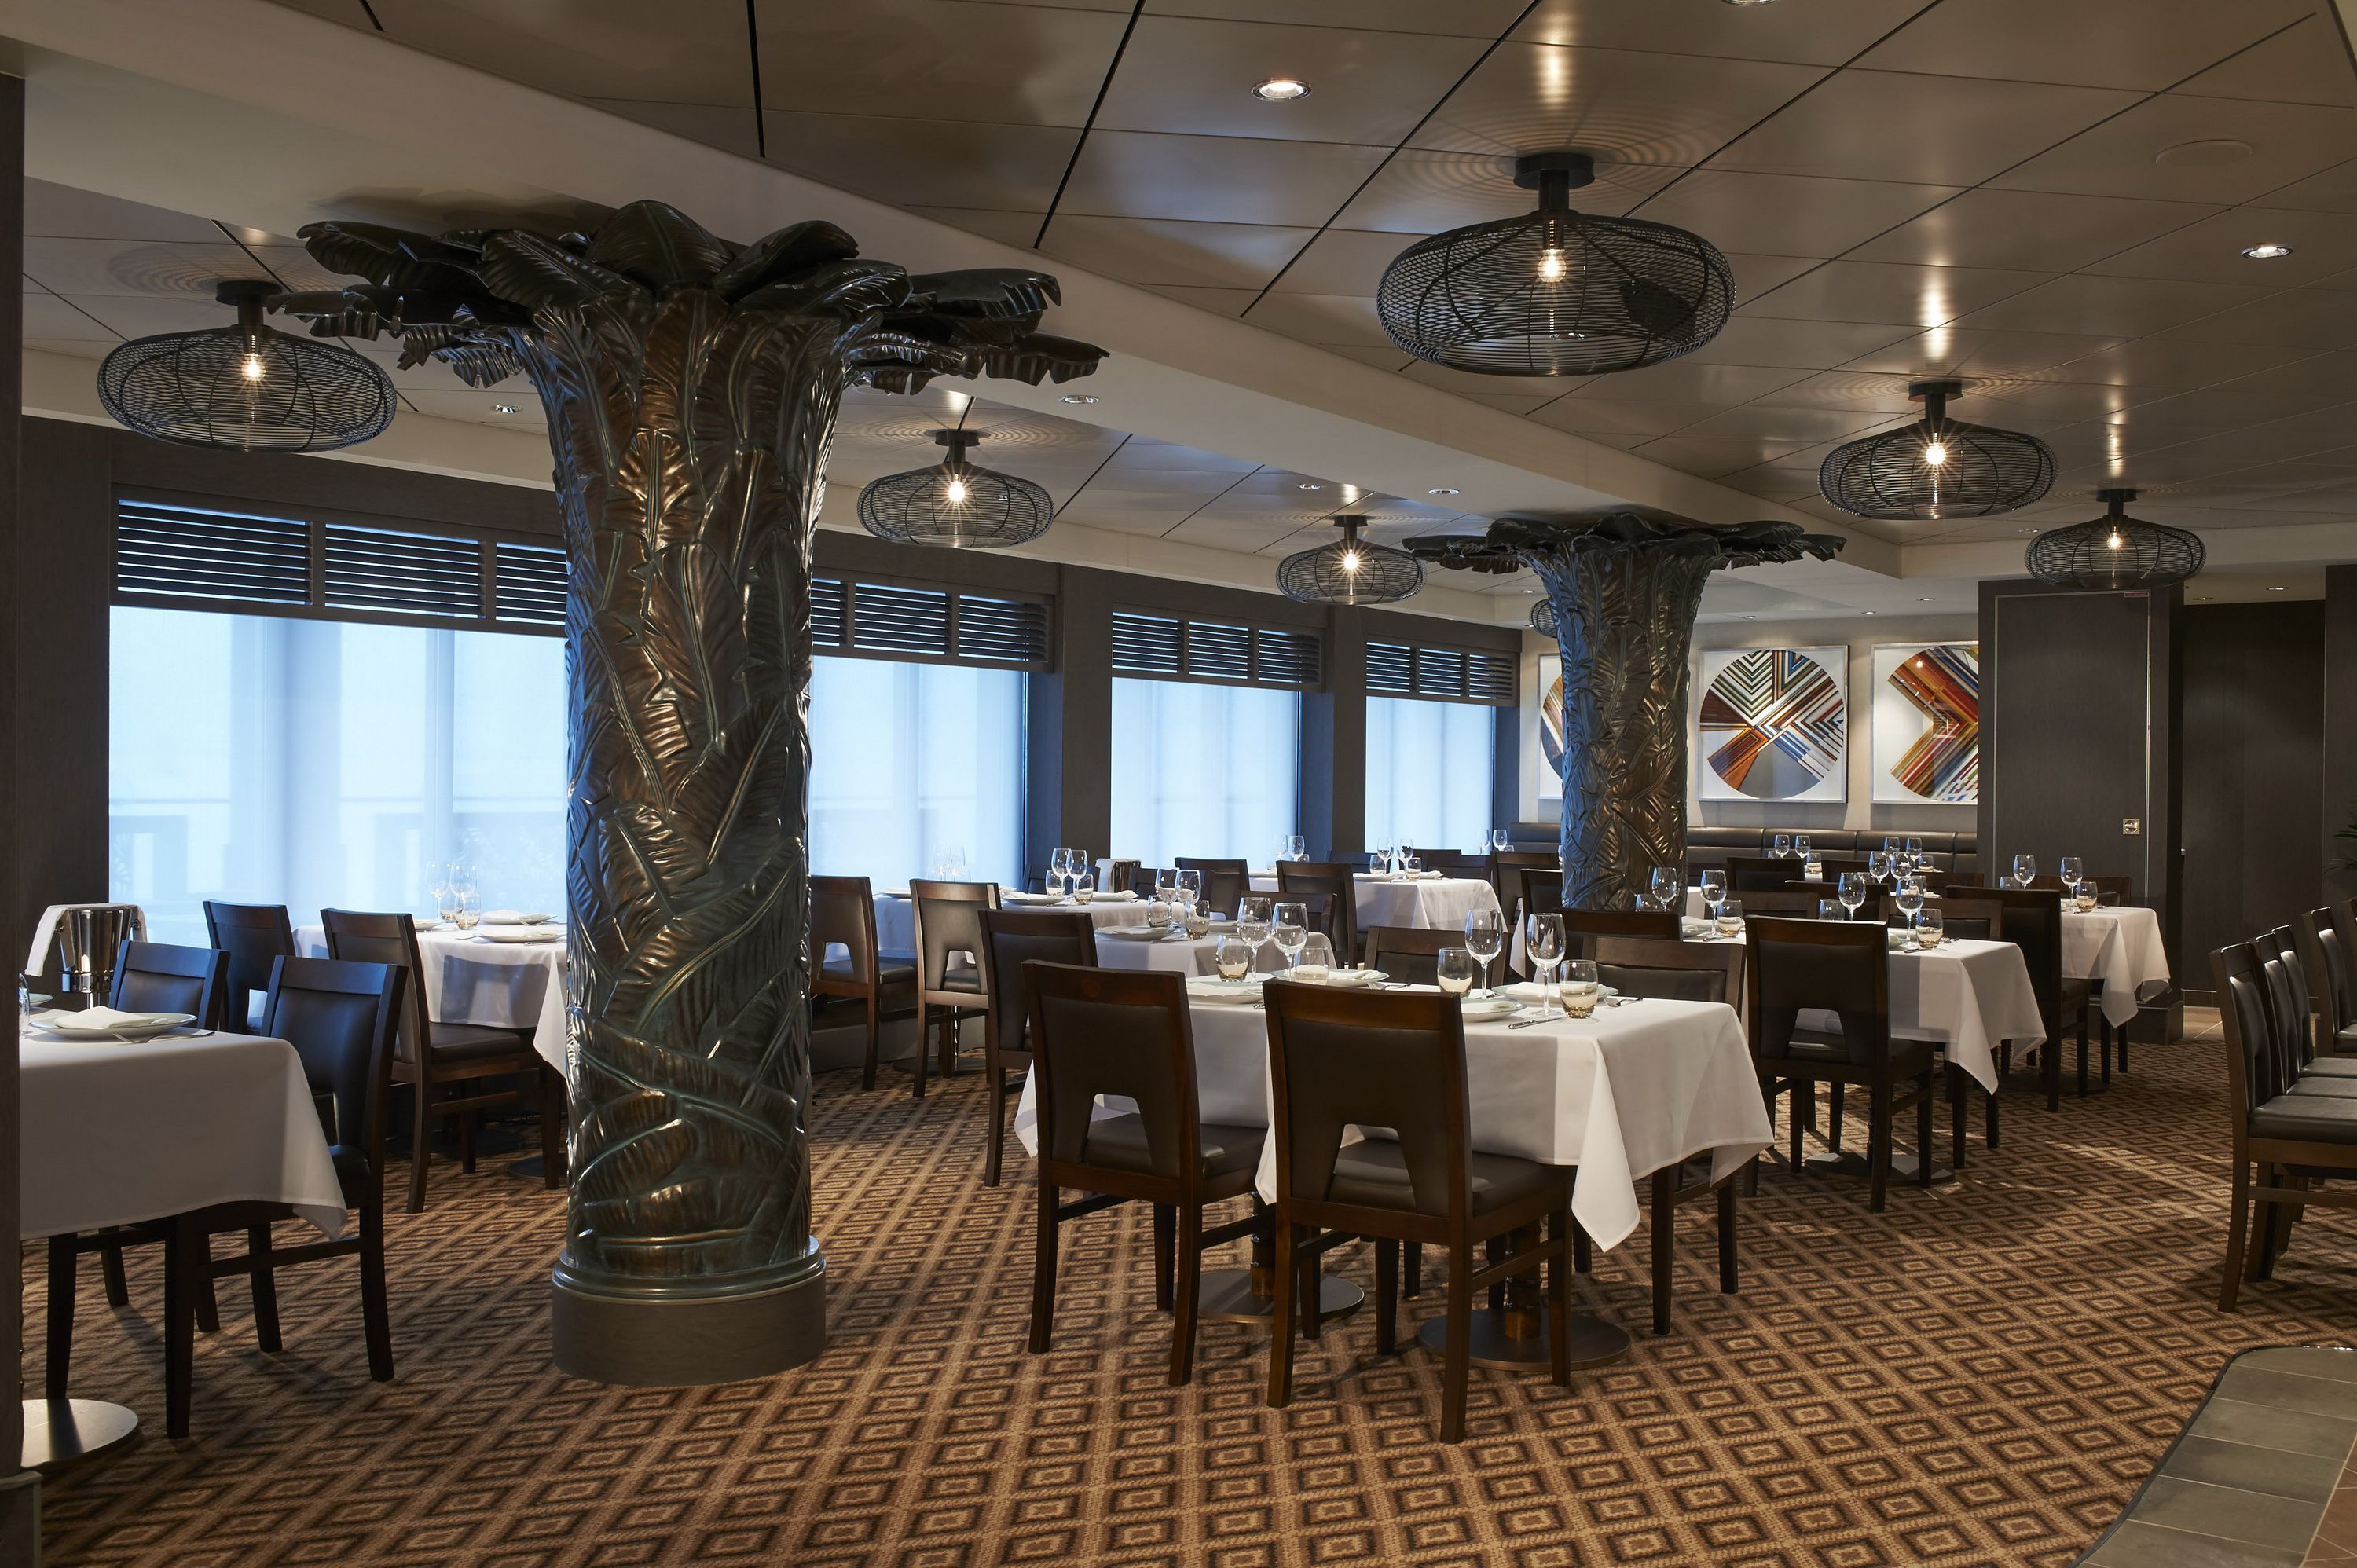 Norwegian Escape Cruise Ship Dining And Cuisine